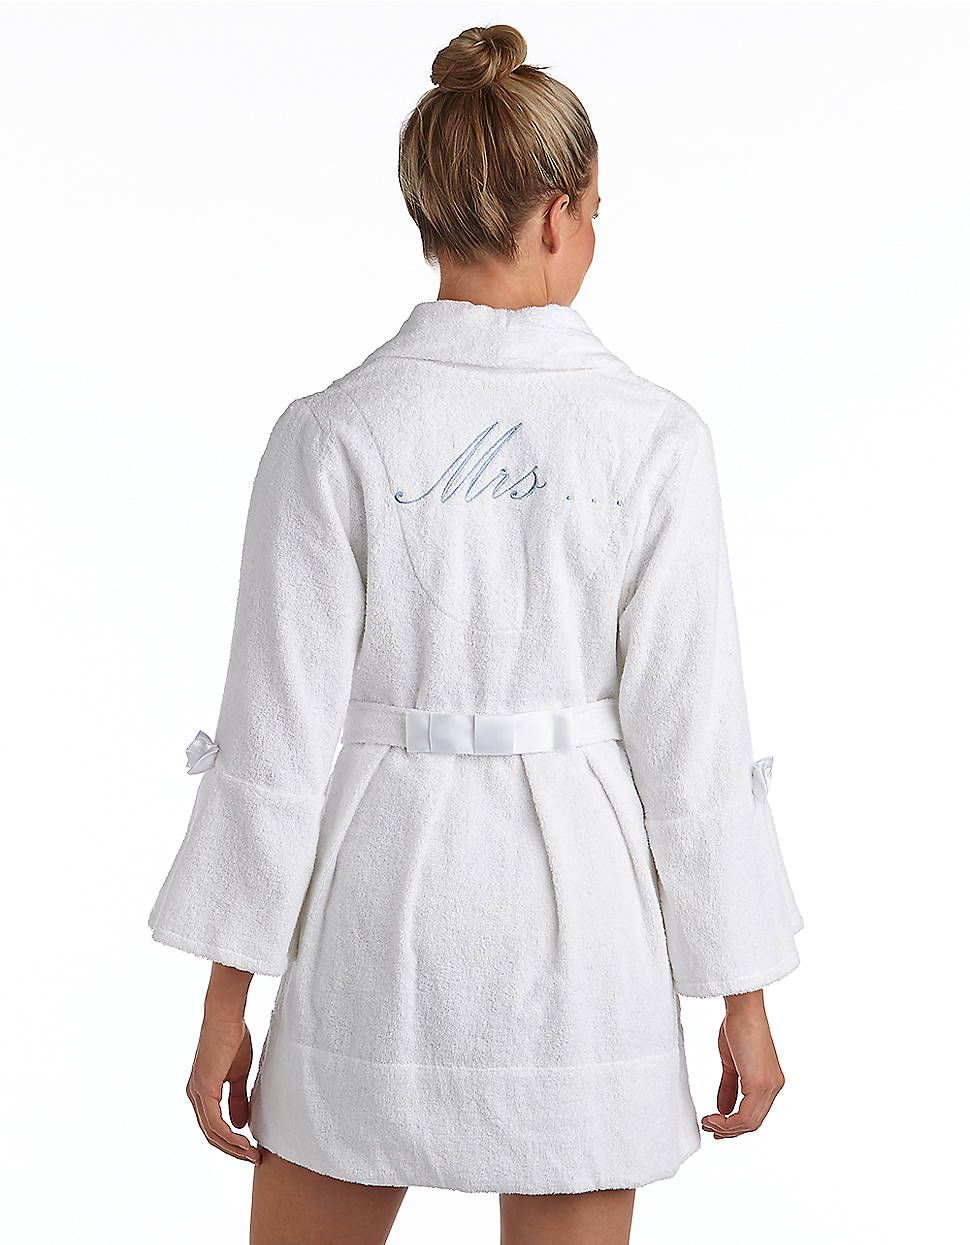 Bridal Robe Lord And Taylor Party Bridal Wedding Bridal Robes